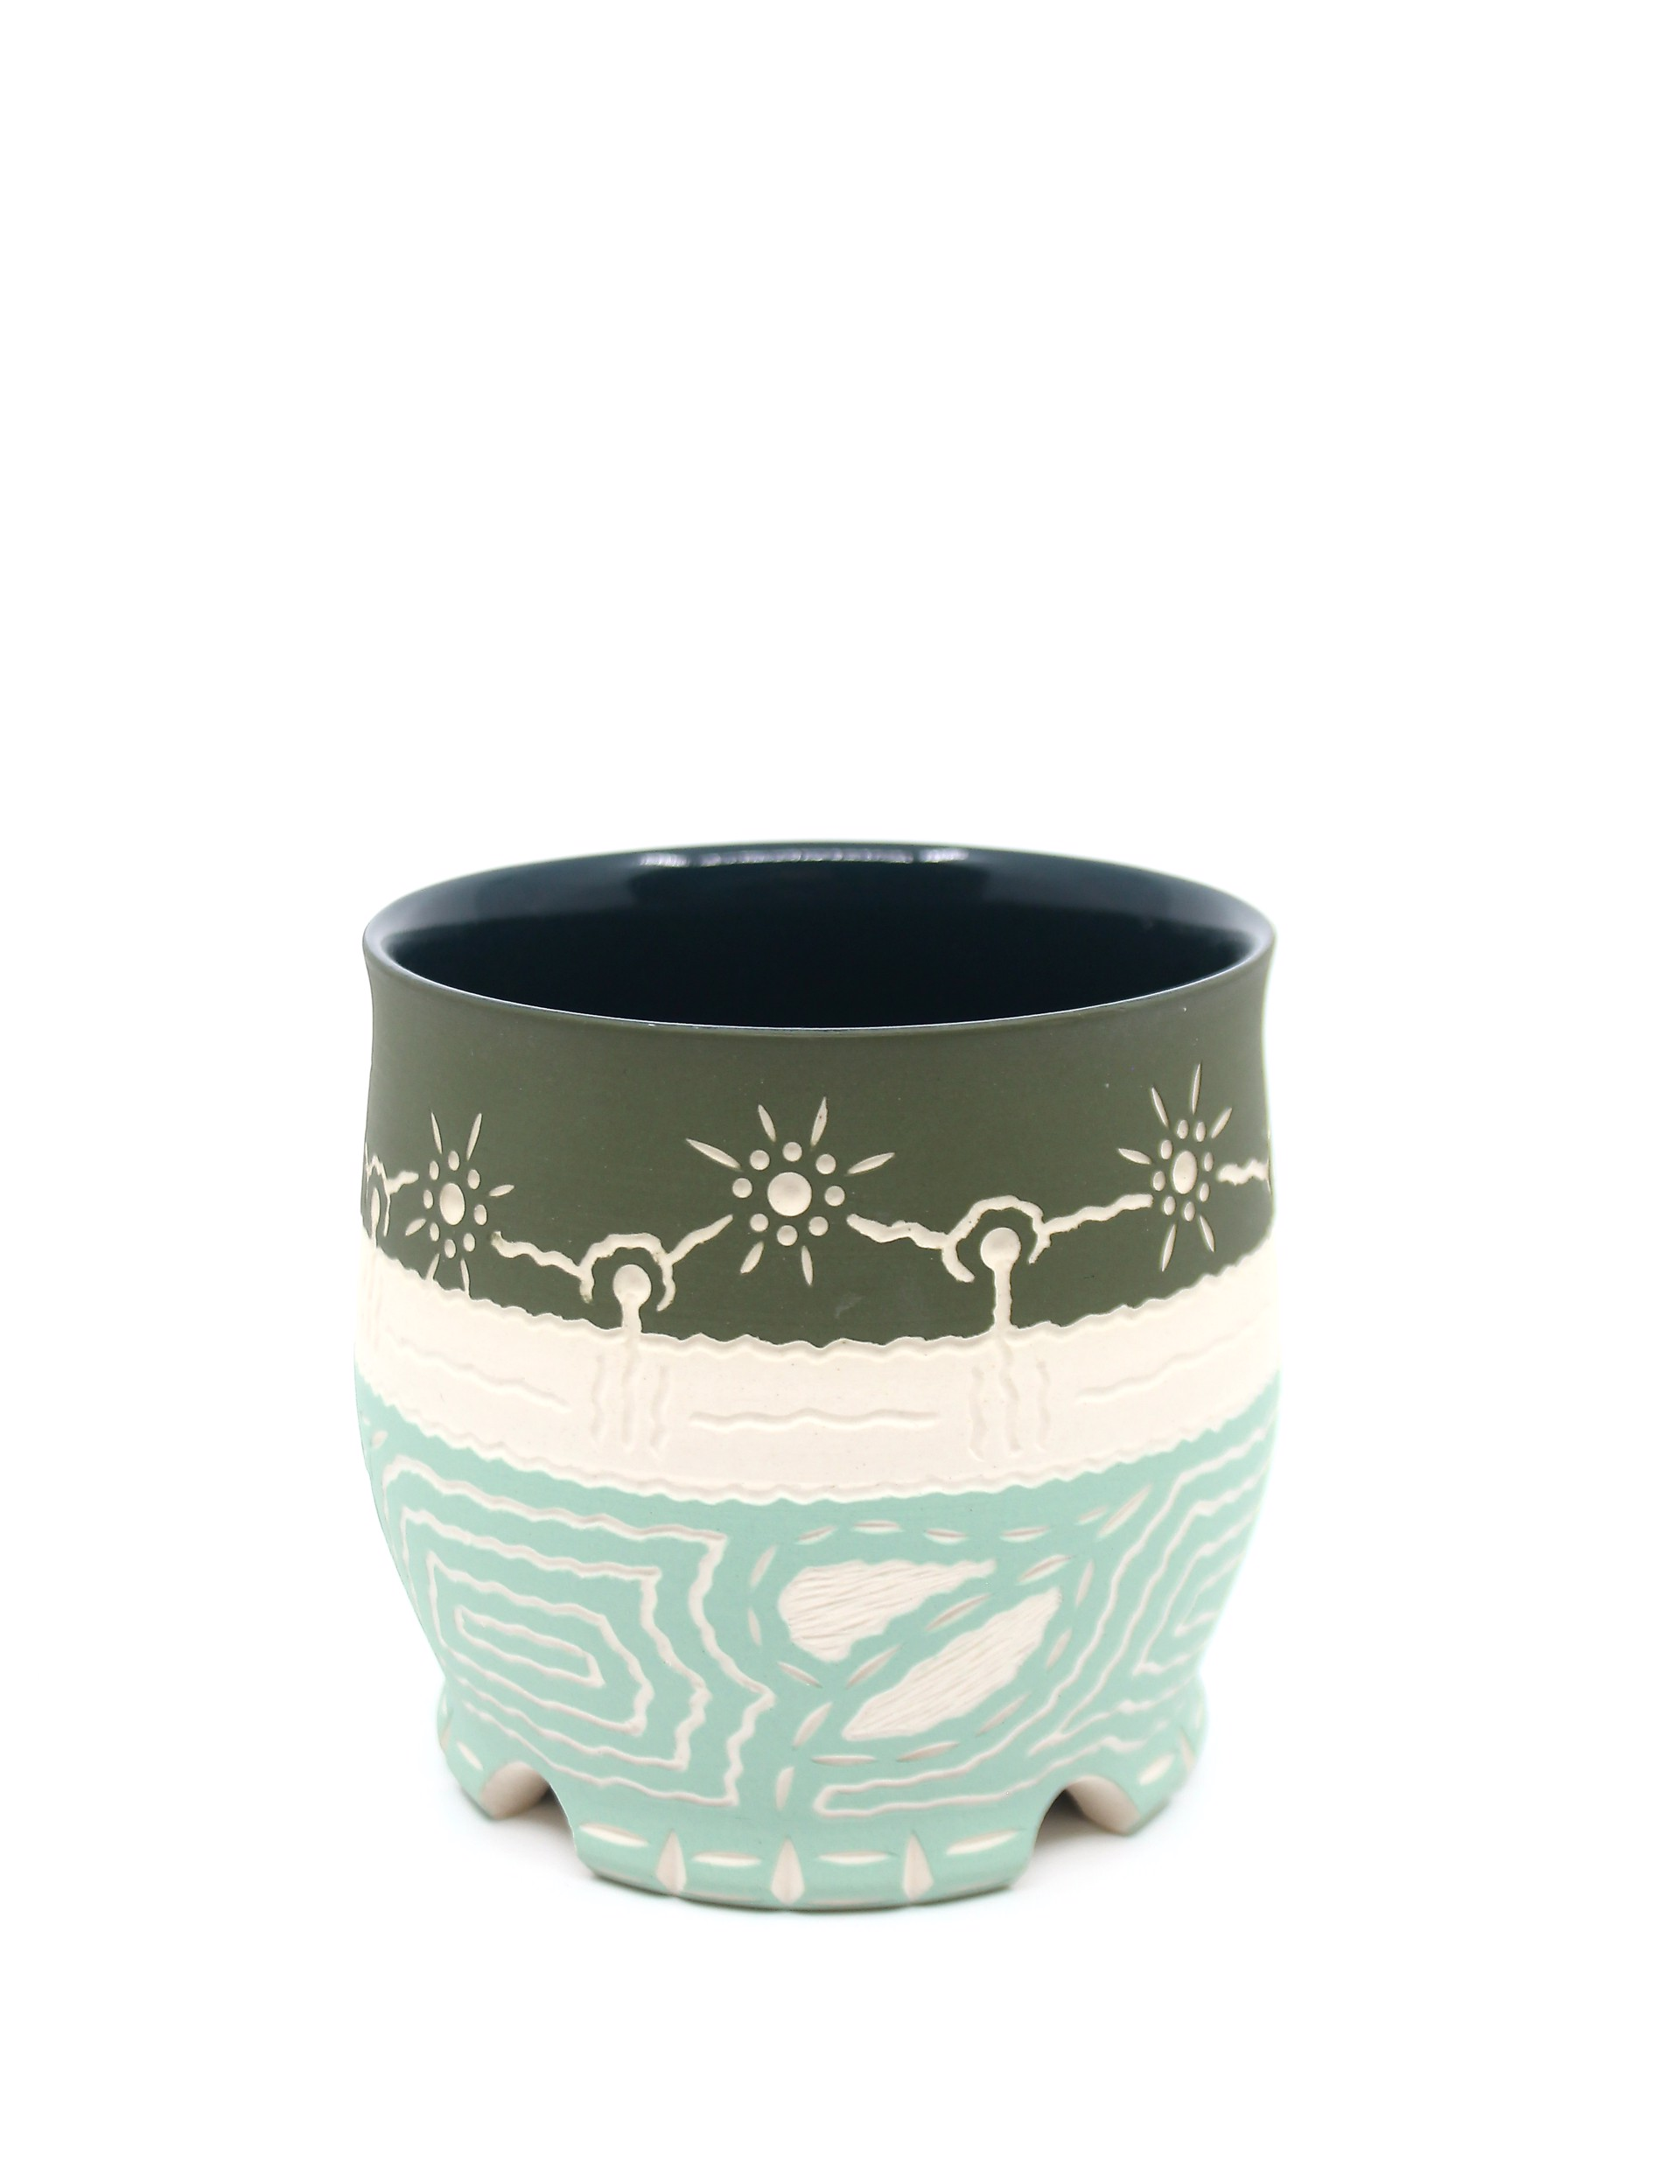 Two-Tone Green Cup by Chris Casey